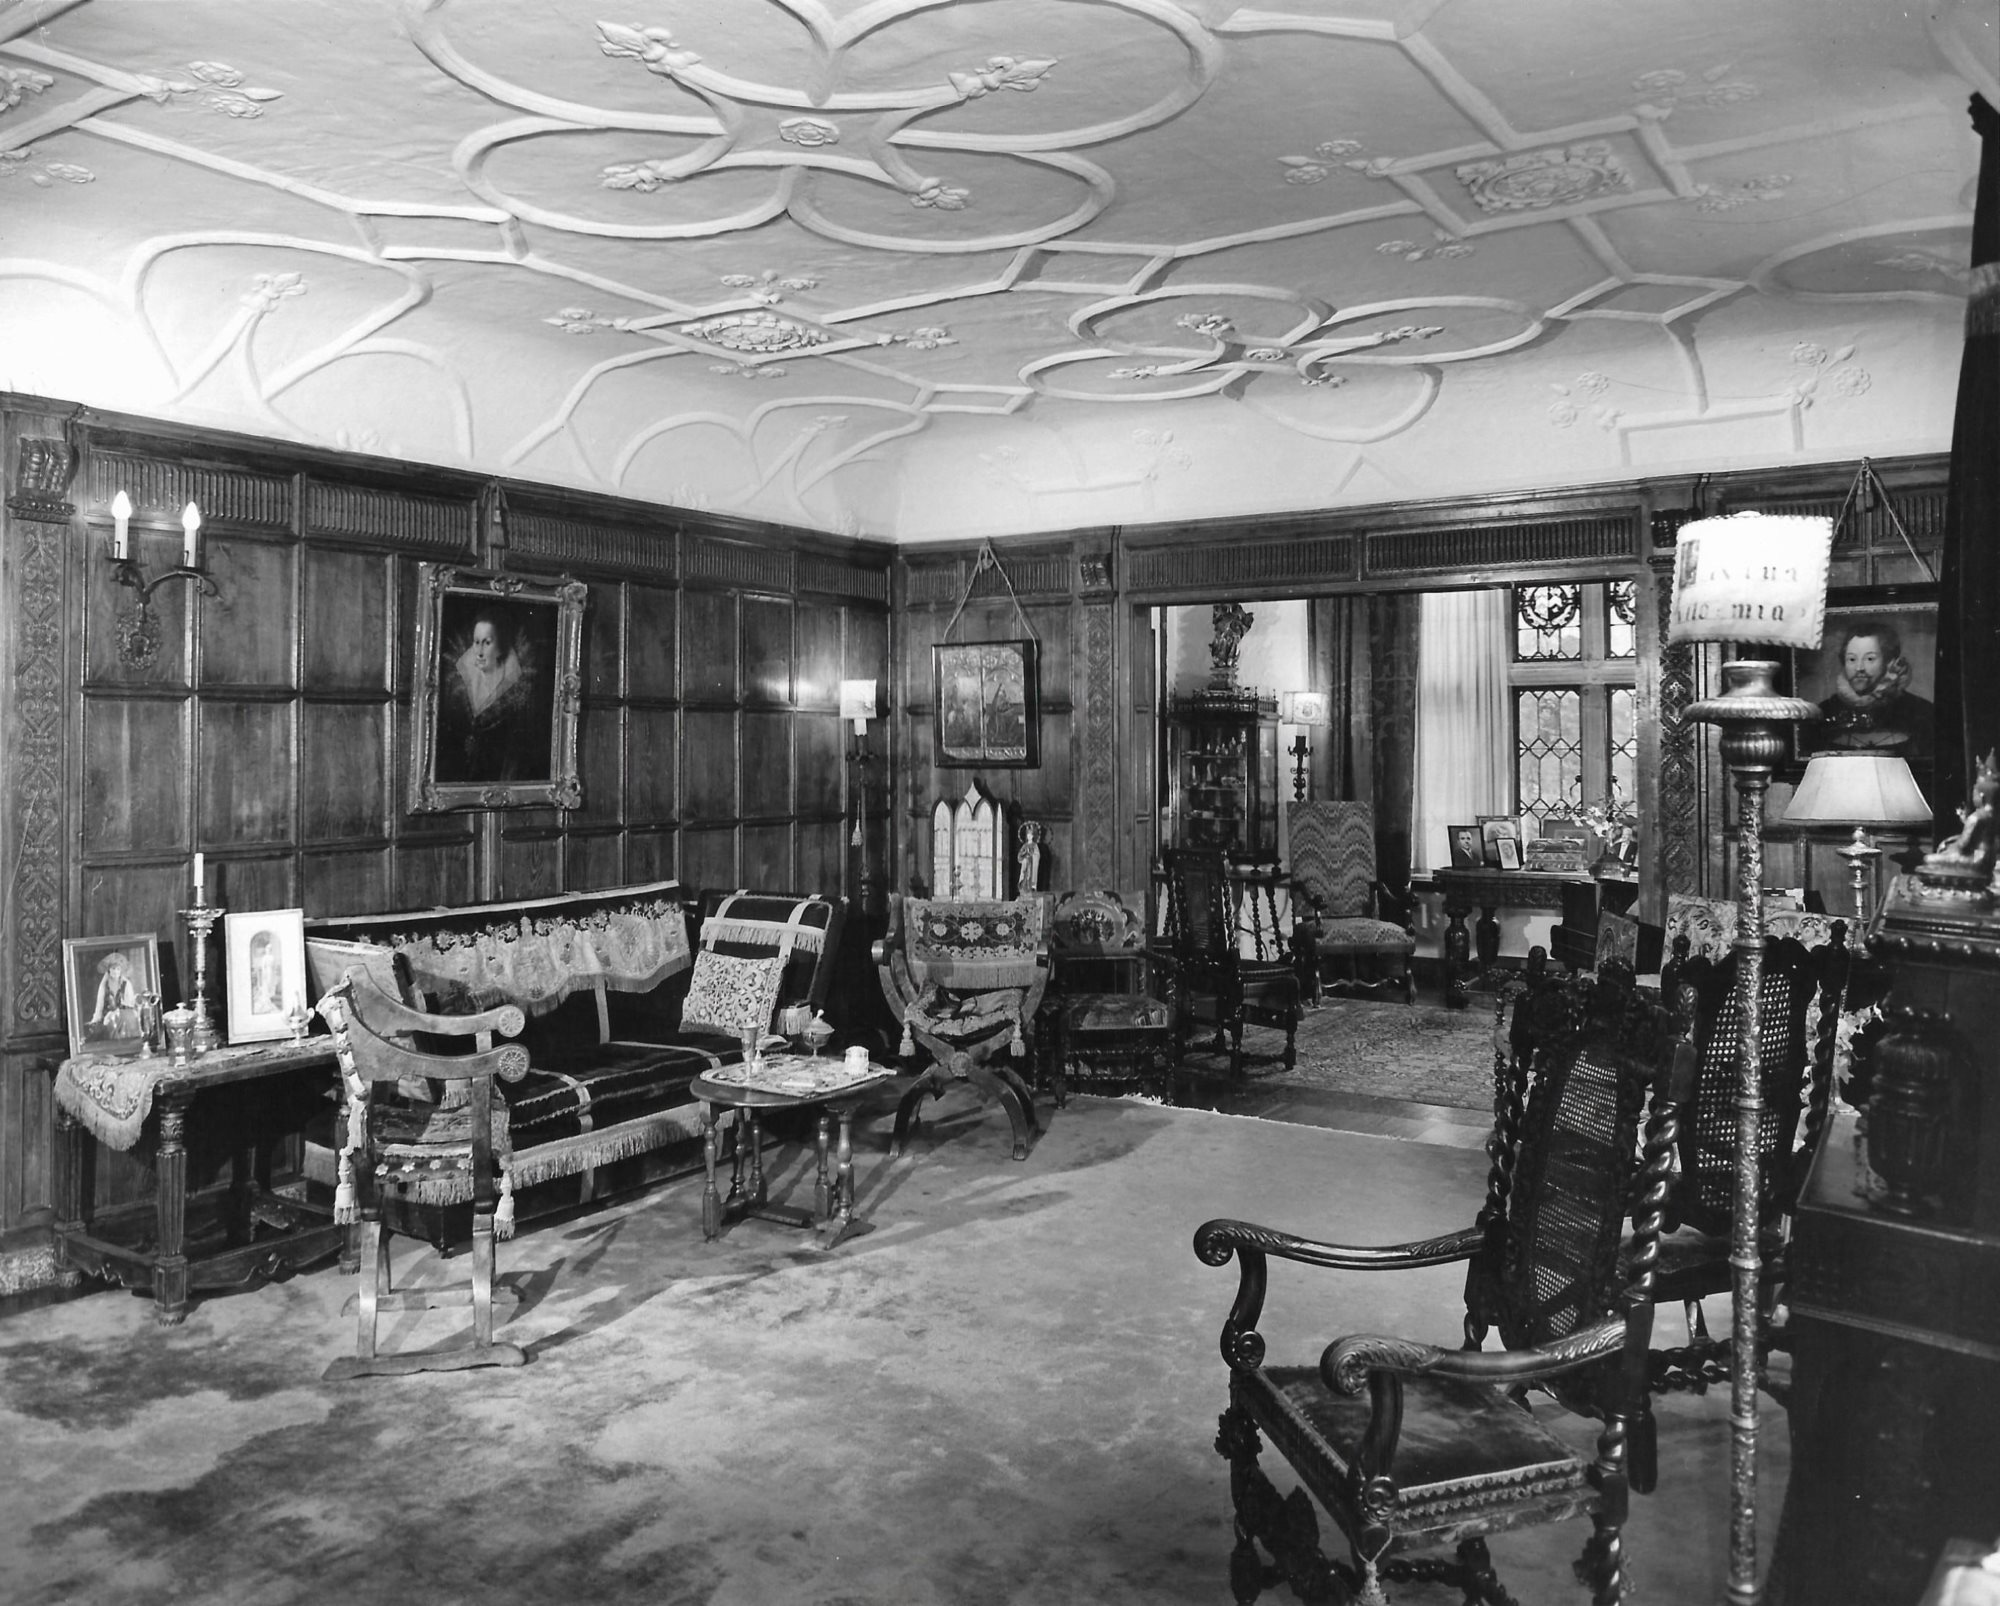 The Withdrawing Room, East End. Archival Photograph from the Personal Collection of Alexander and Virginia Weddell, courtesy of the Virginia House Museum.